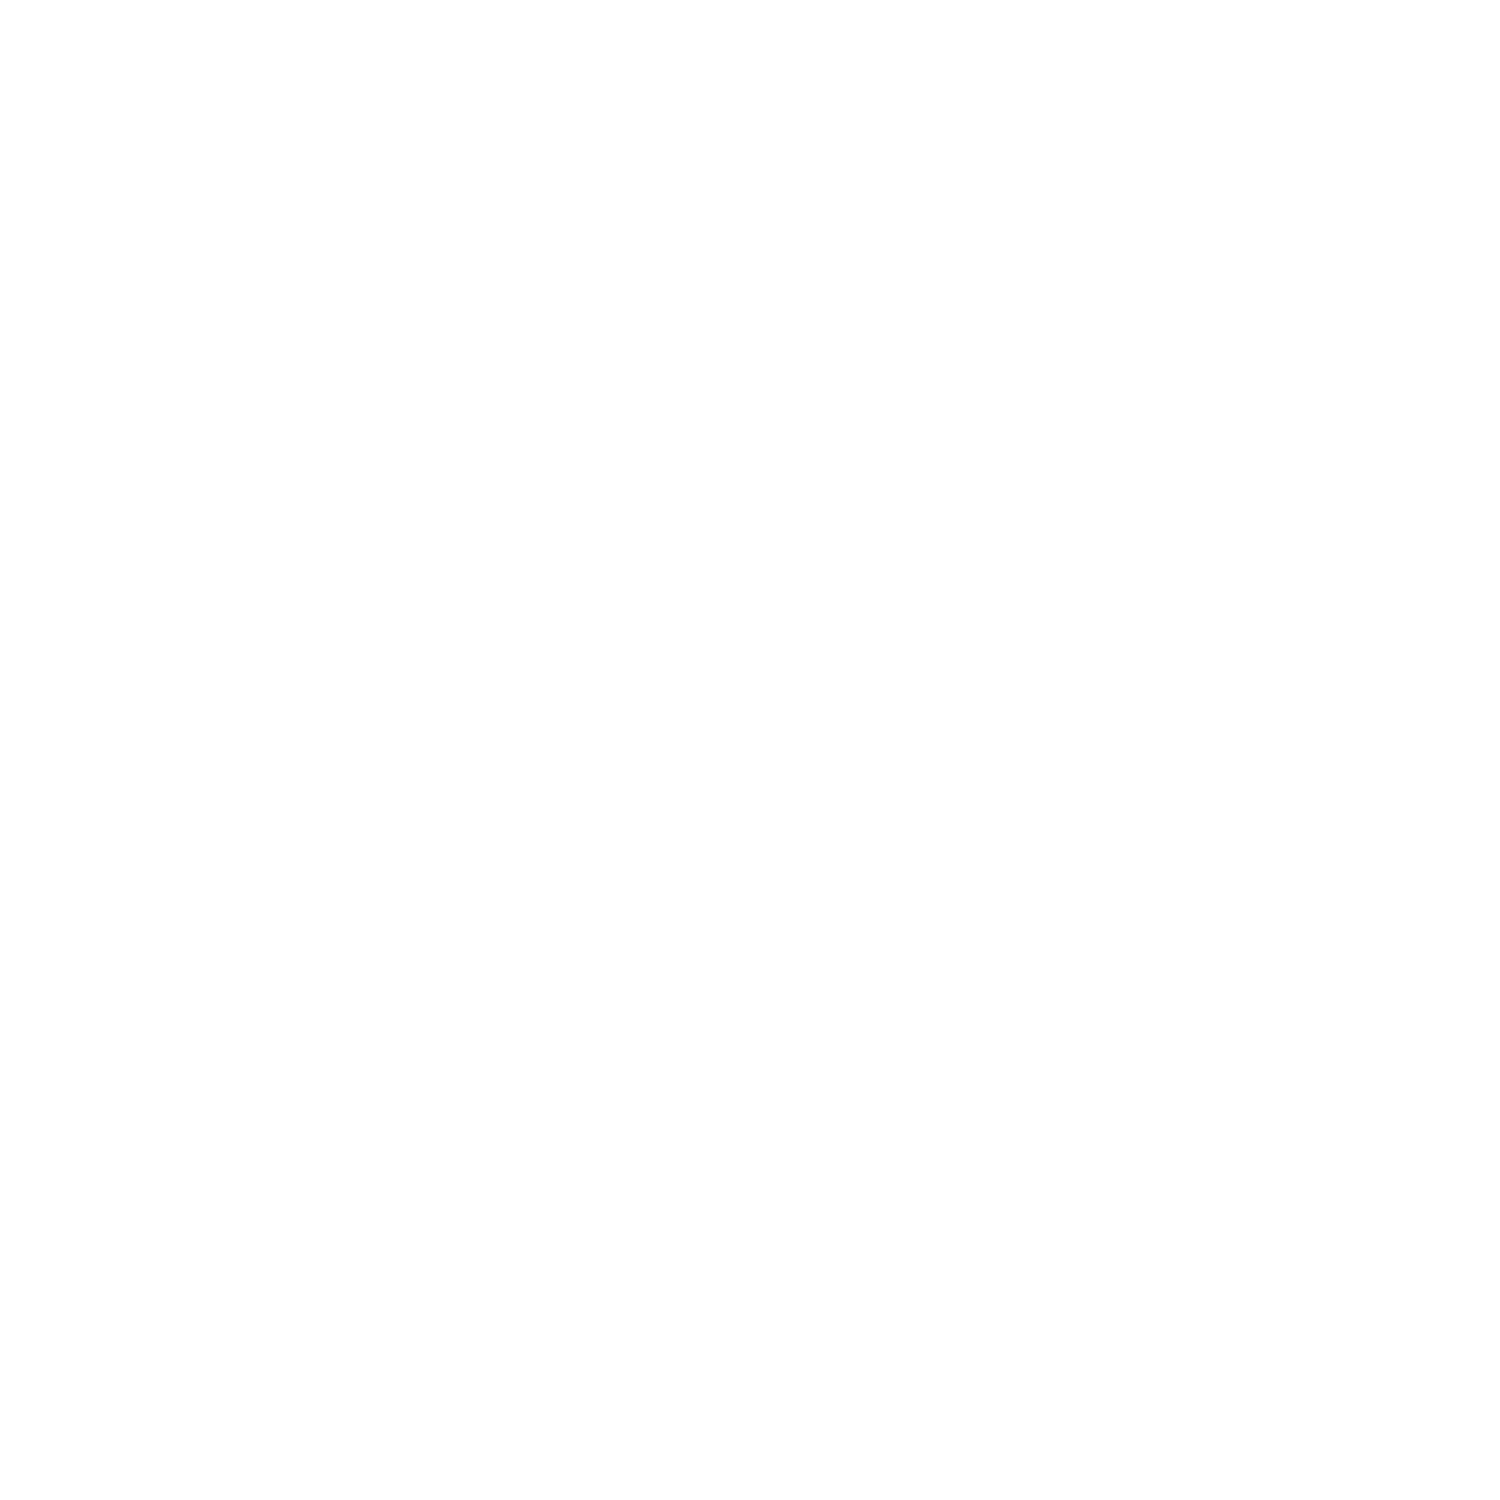 - DA FIORETTI - FOREST SCHOOL FOR DOGS